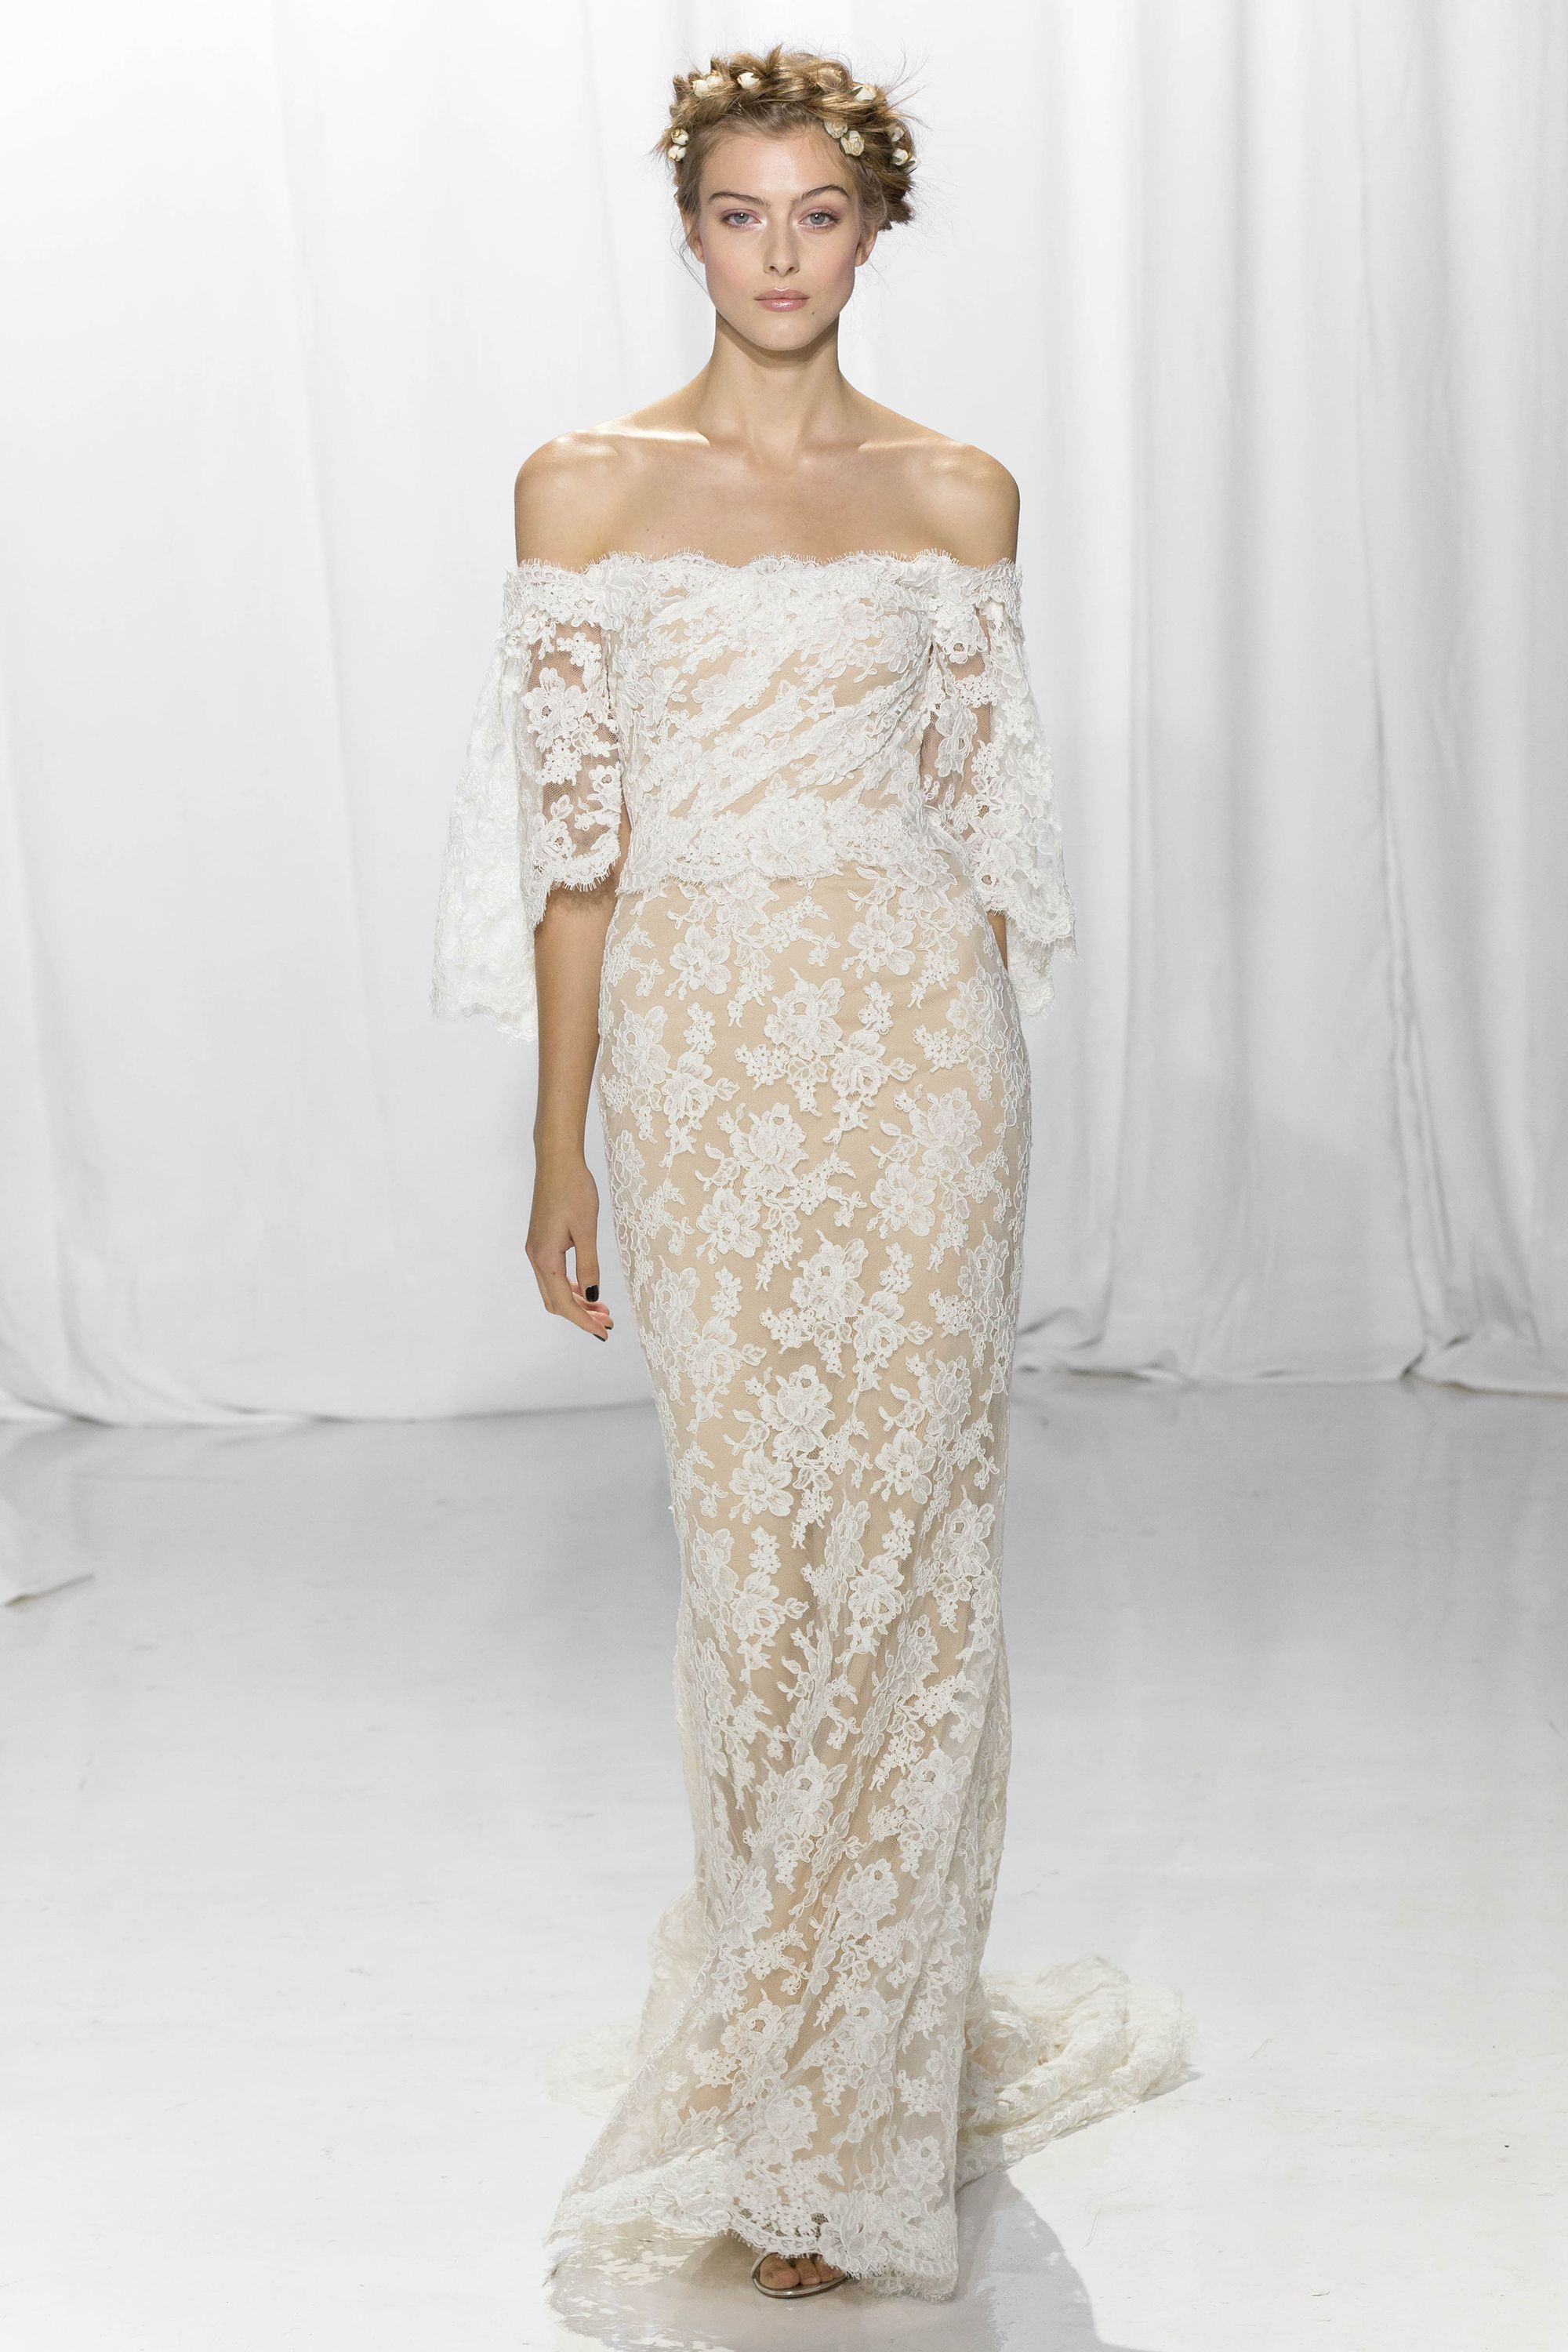 Just in the best looks from bridal fall wedding styles